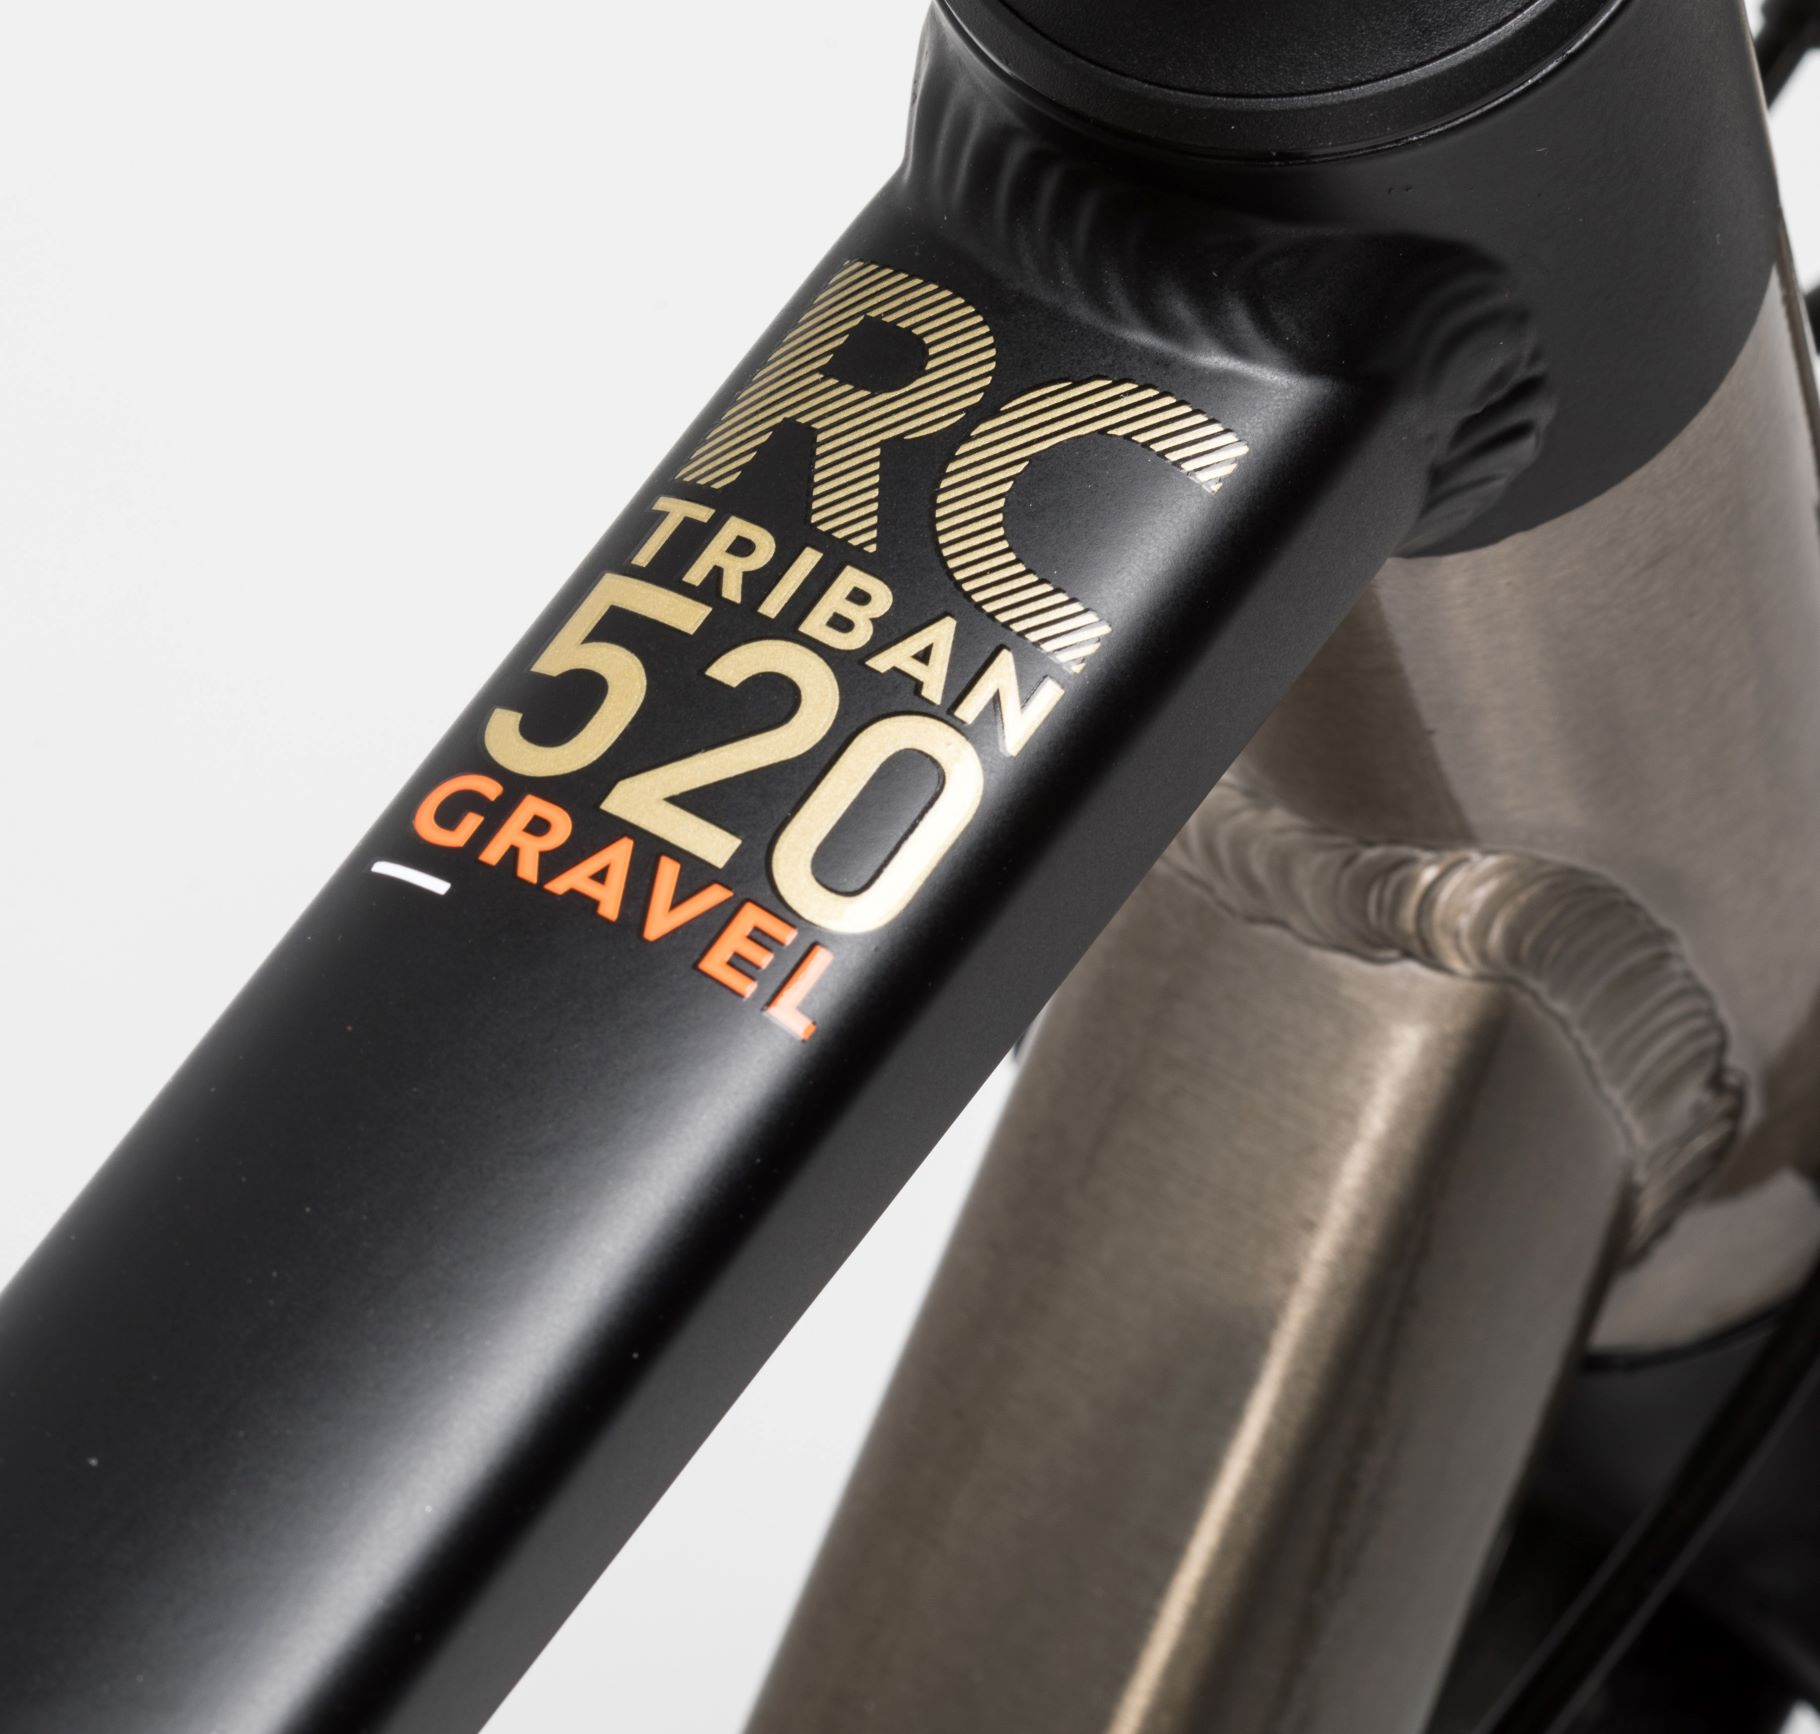 Gravel Bikes – What Are They?